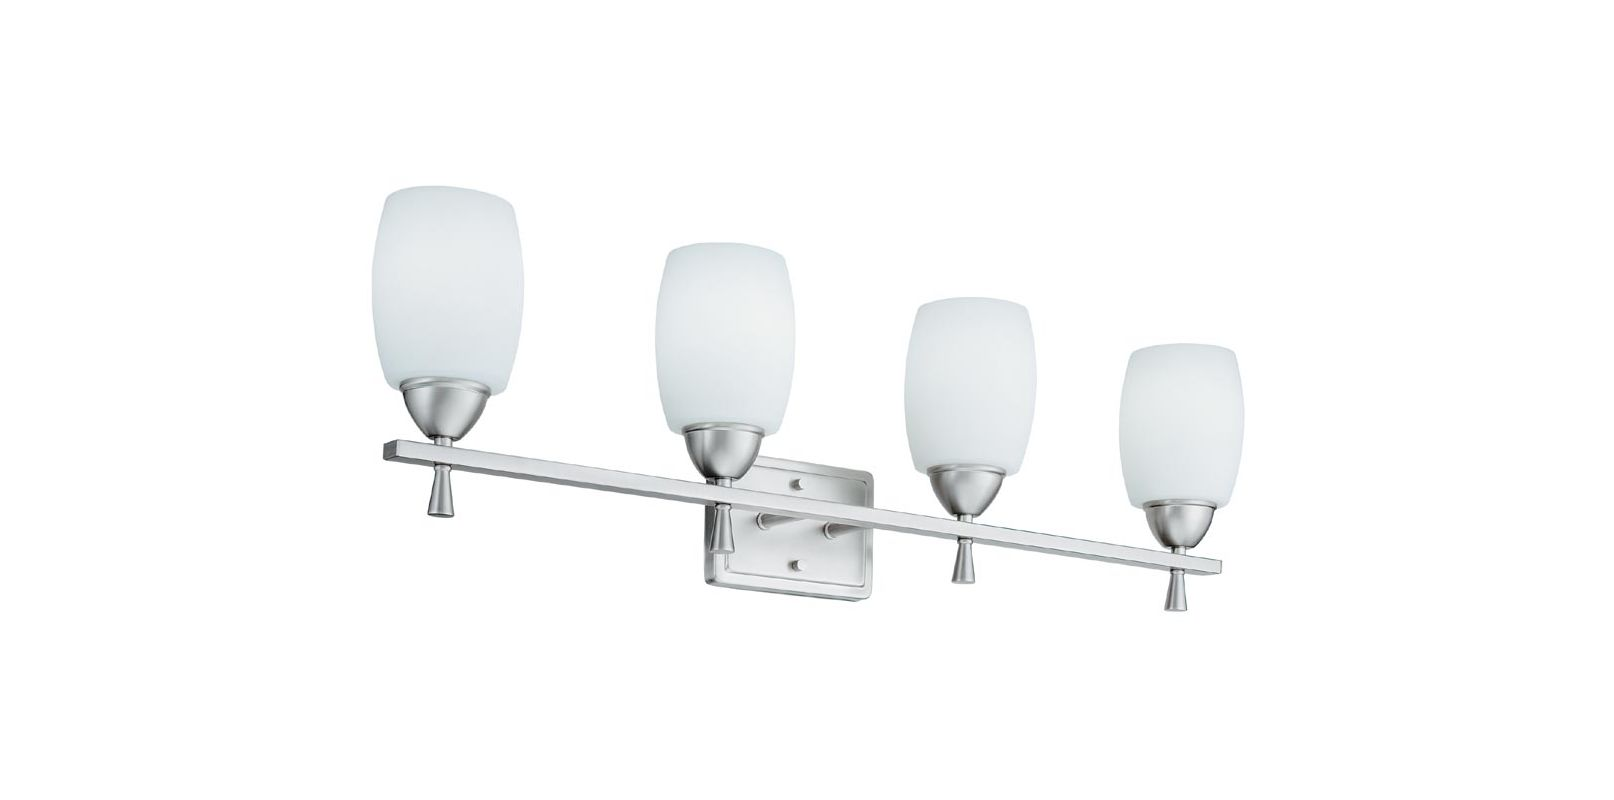 "Lithonia Lighting 11534 33.75"" Wide Ferros 4 Light Vanity Polished Sale $58.46 ITEM: bci1589485 ID#:11534 BN M2 UPC: 784231184646 :"